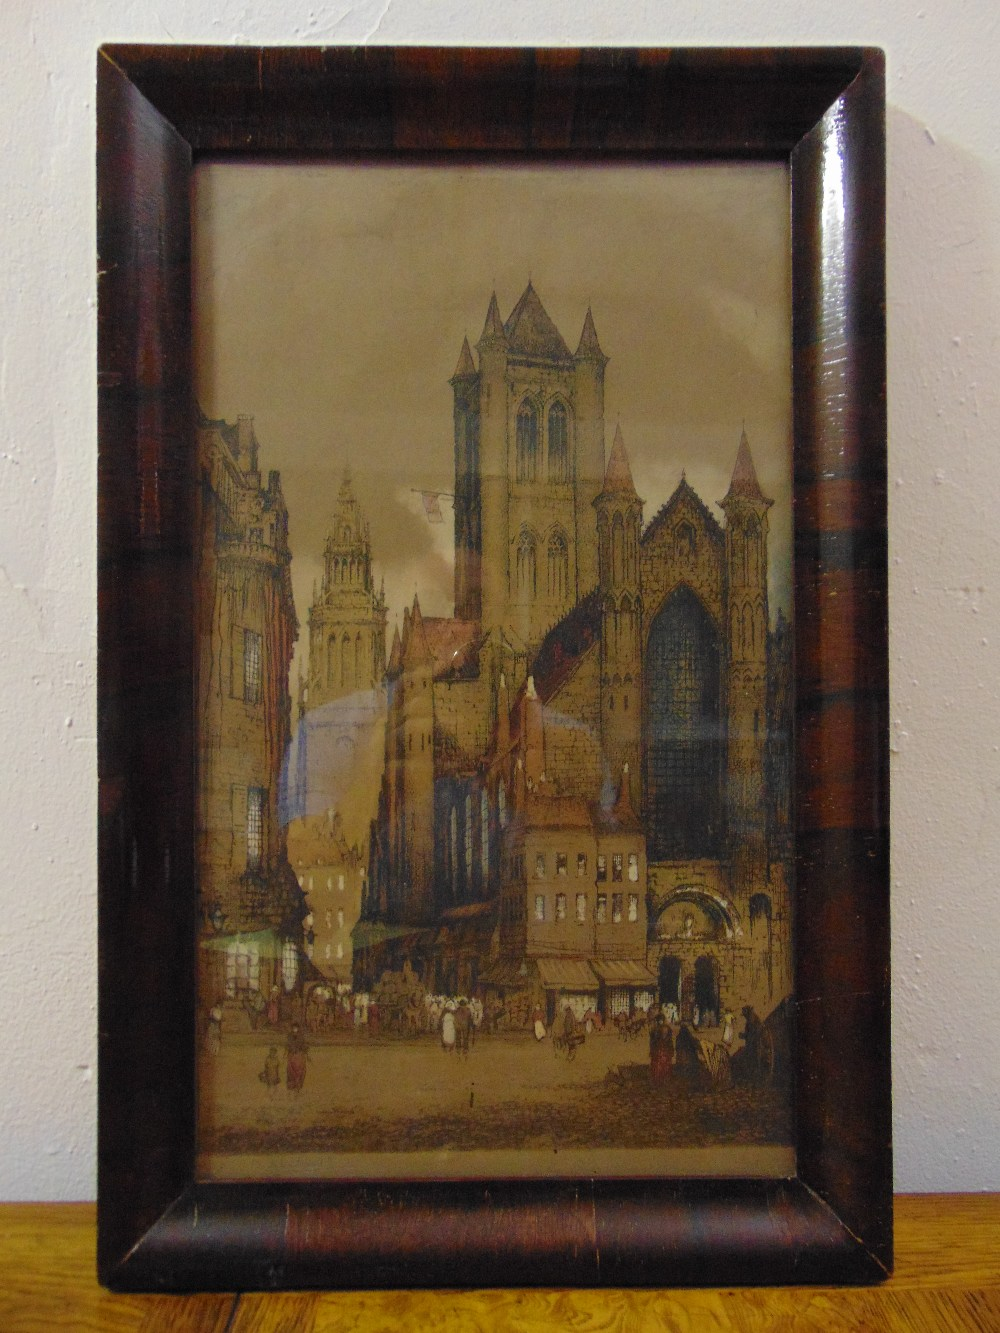 Lot 30 - Edward W. Sharland framed and glazed polychromatic etching of a cathedral, signed bottom left, 44